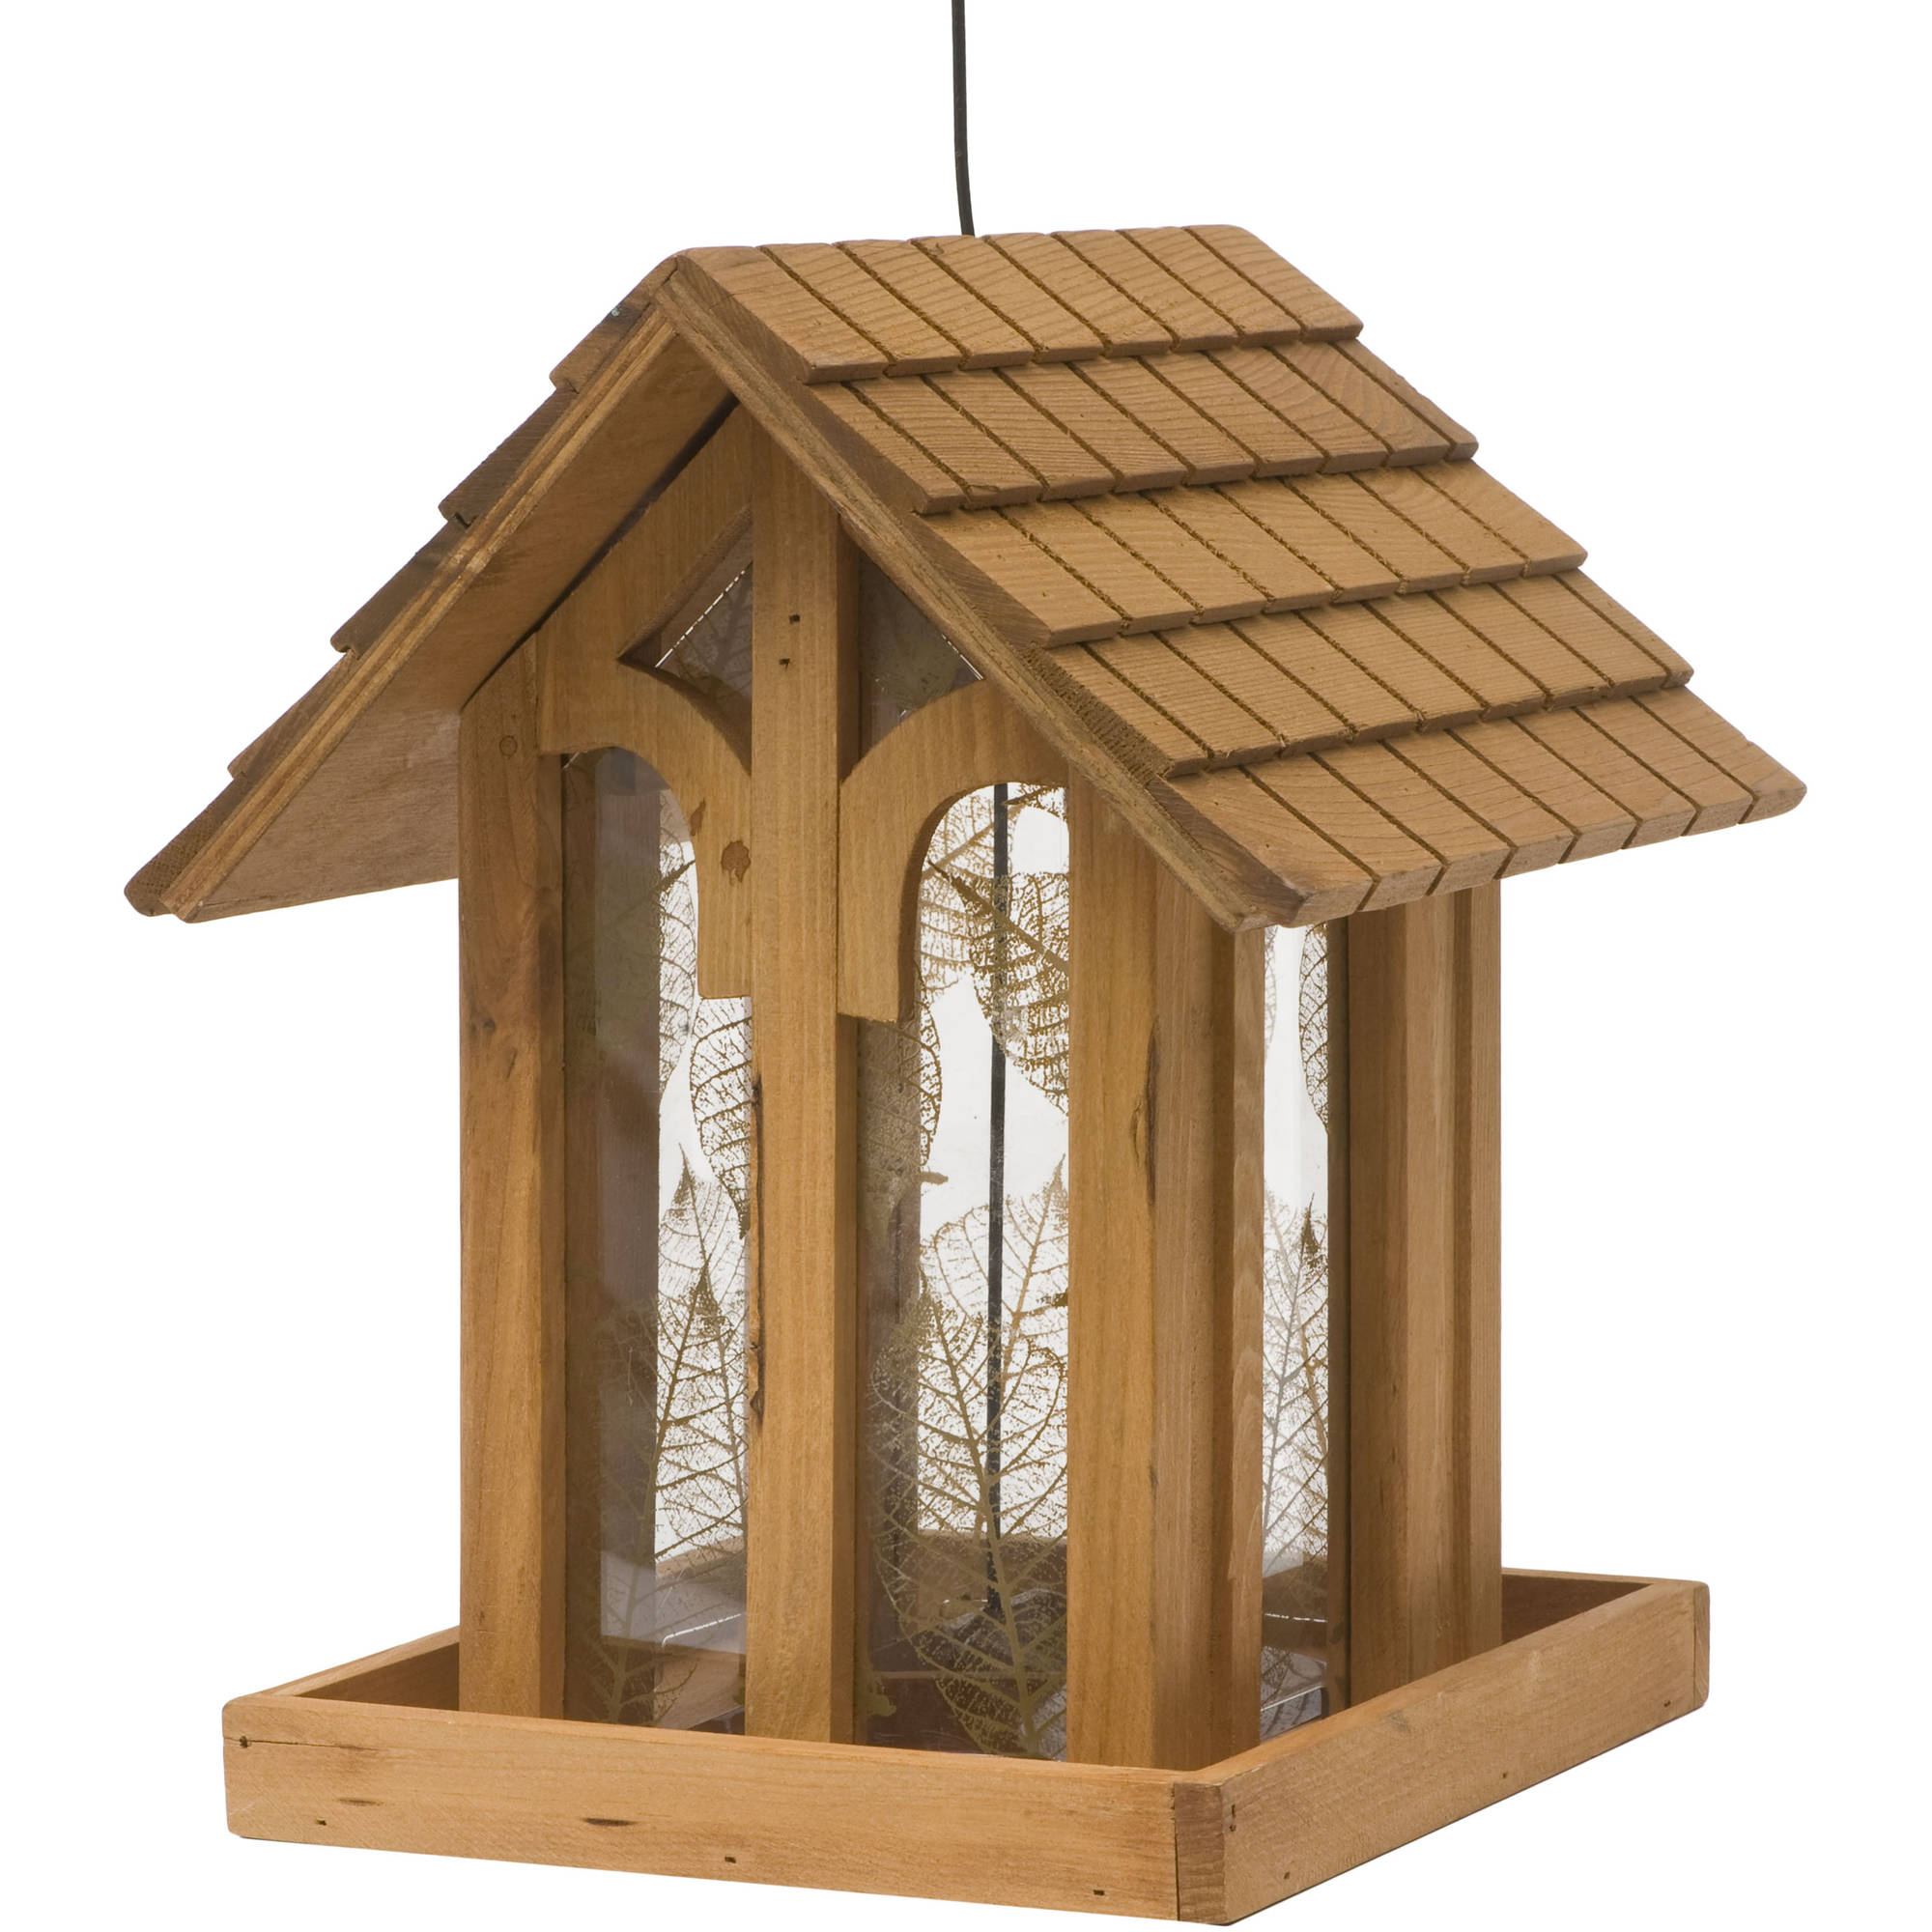 Birdscapes 50172 3.6 Lb. Capacity Fresh Designs Mountain Chapel Birdfeeder by woodstream